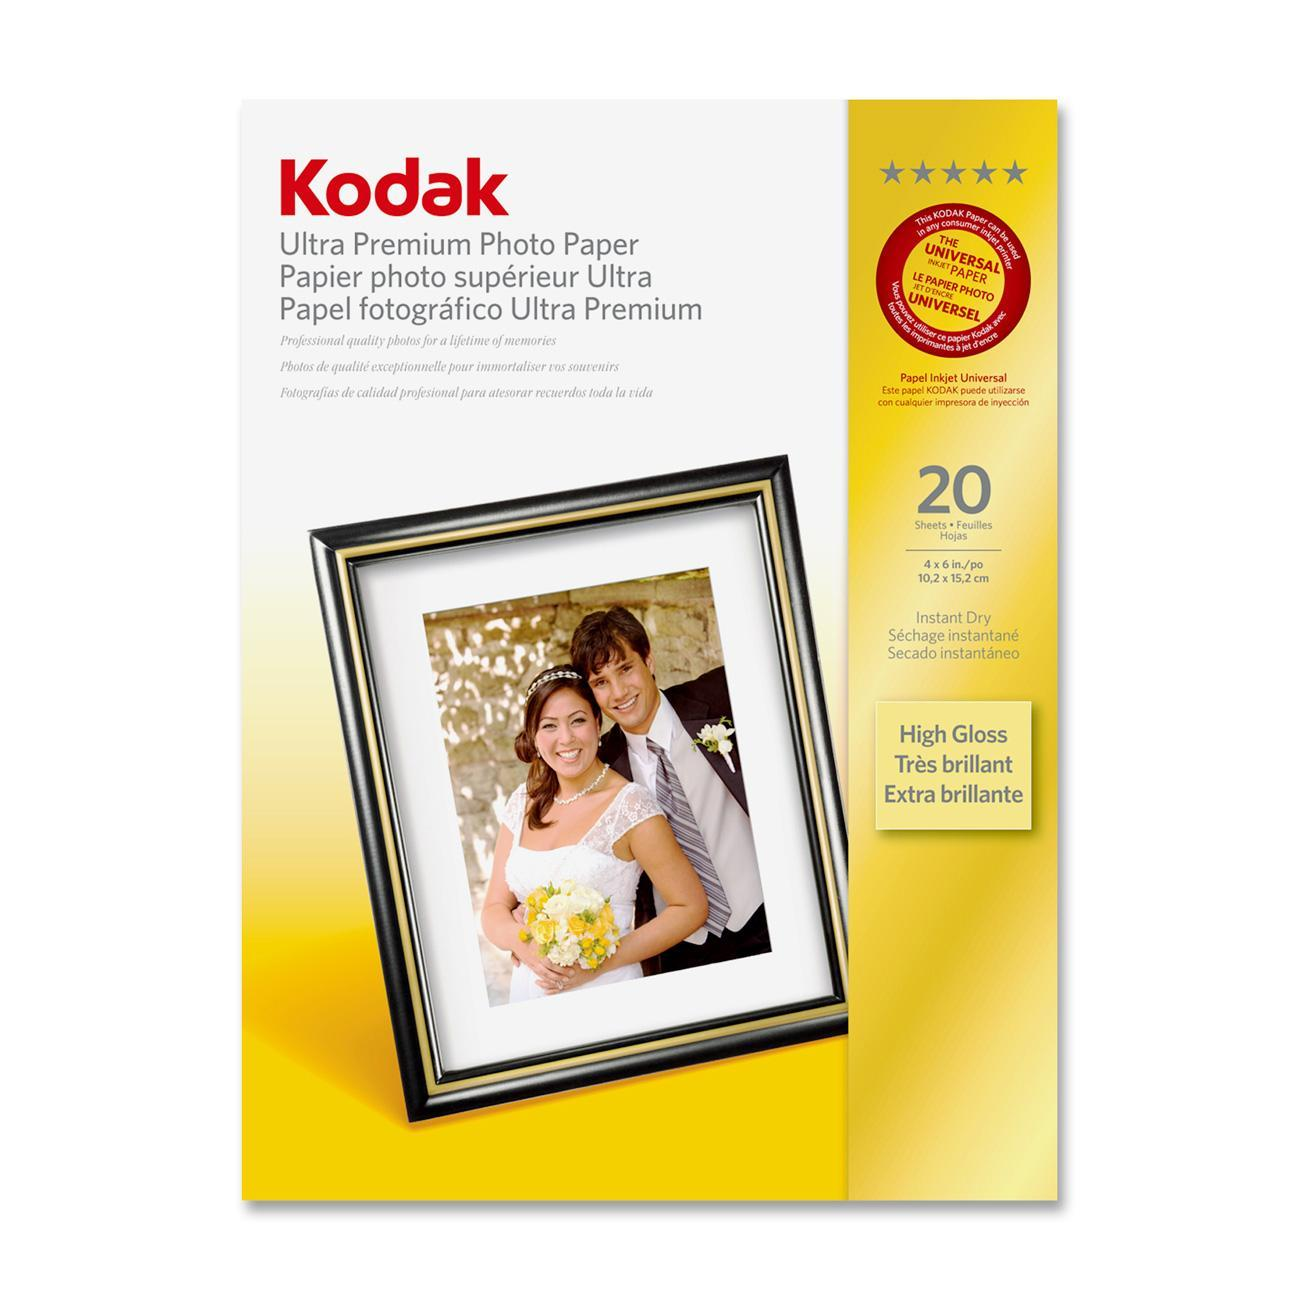 Kodak, KOD8777757, Ultra Premium 10 mil Photo Paper, 1 / Pack, White